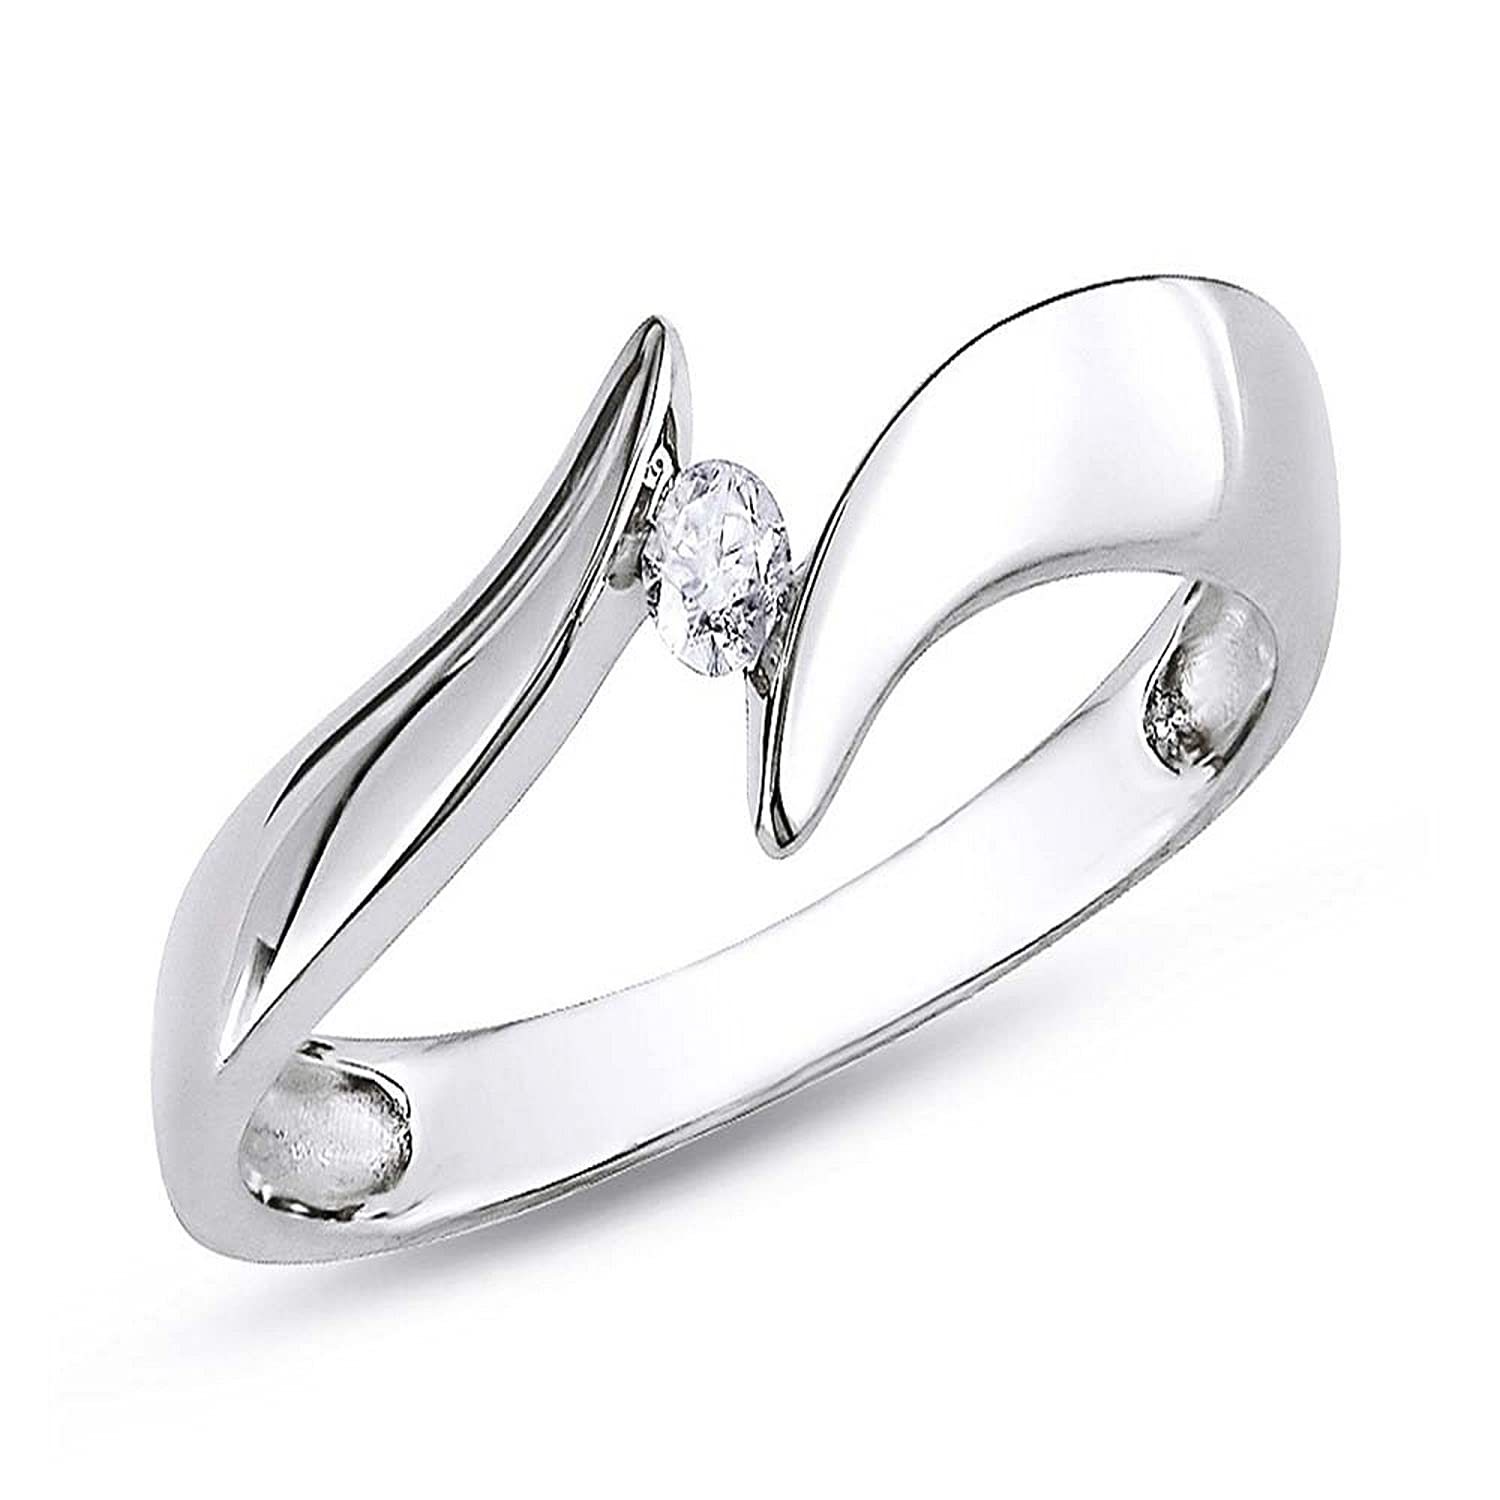 vintage jewellery s addiction rings silver sterling engagement ring deco eve style cz